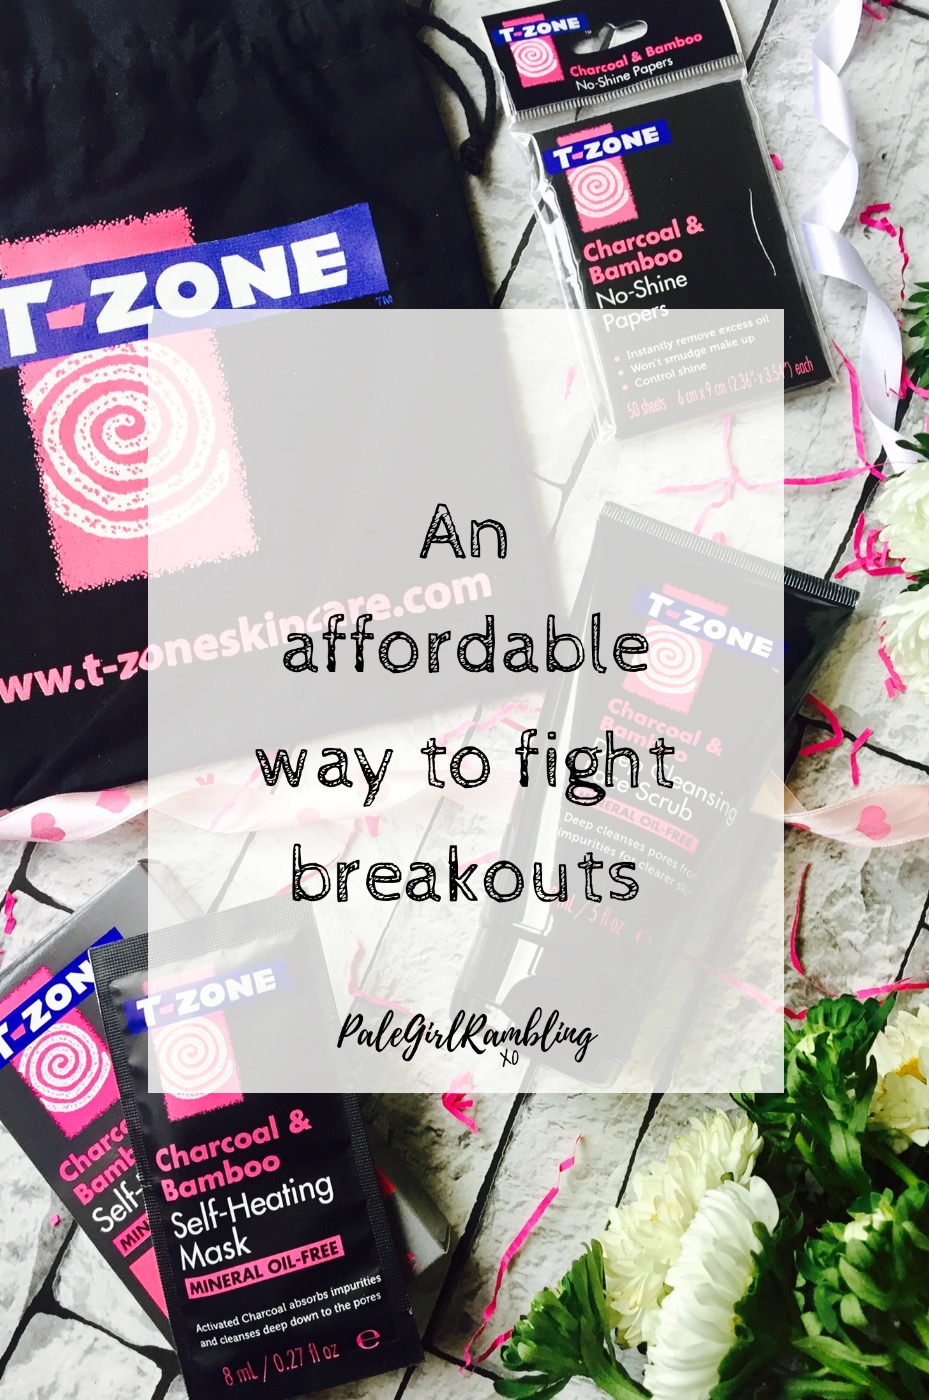 T-Zone affordable skincare for blemish prone skin